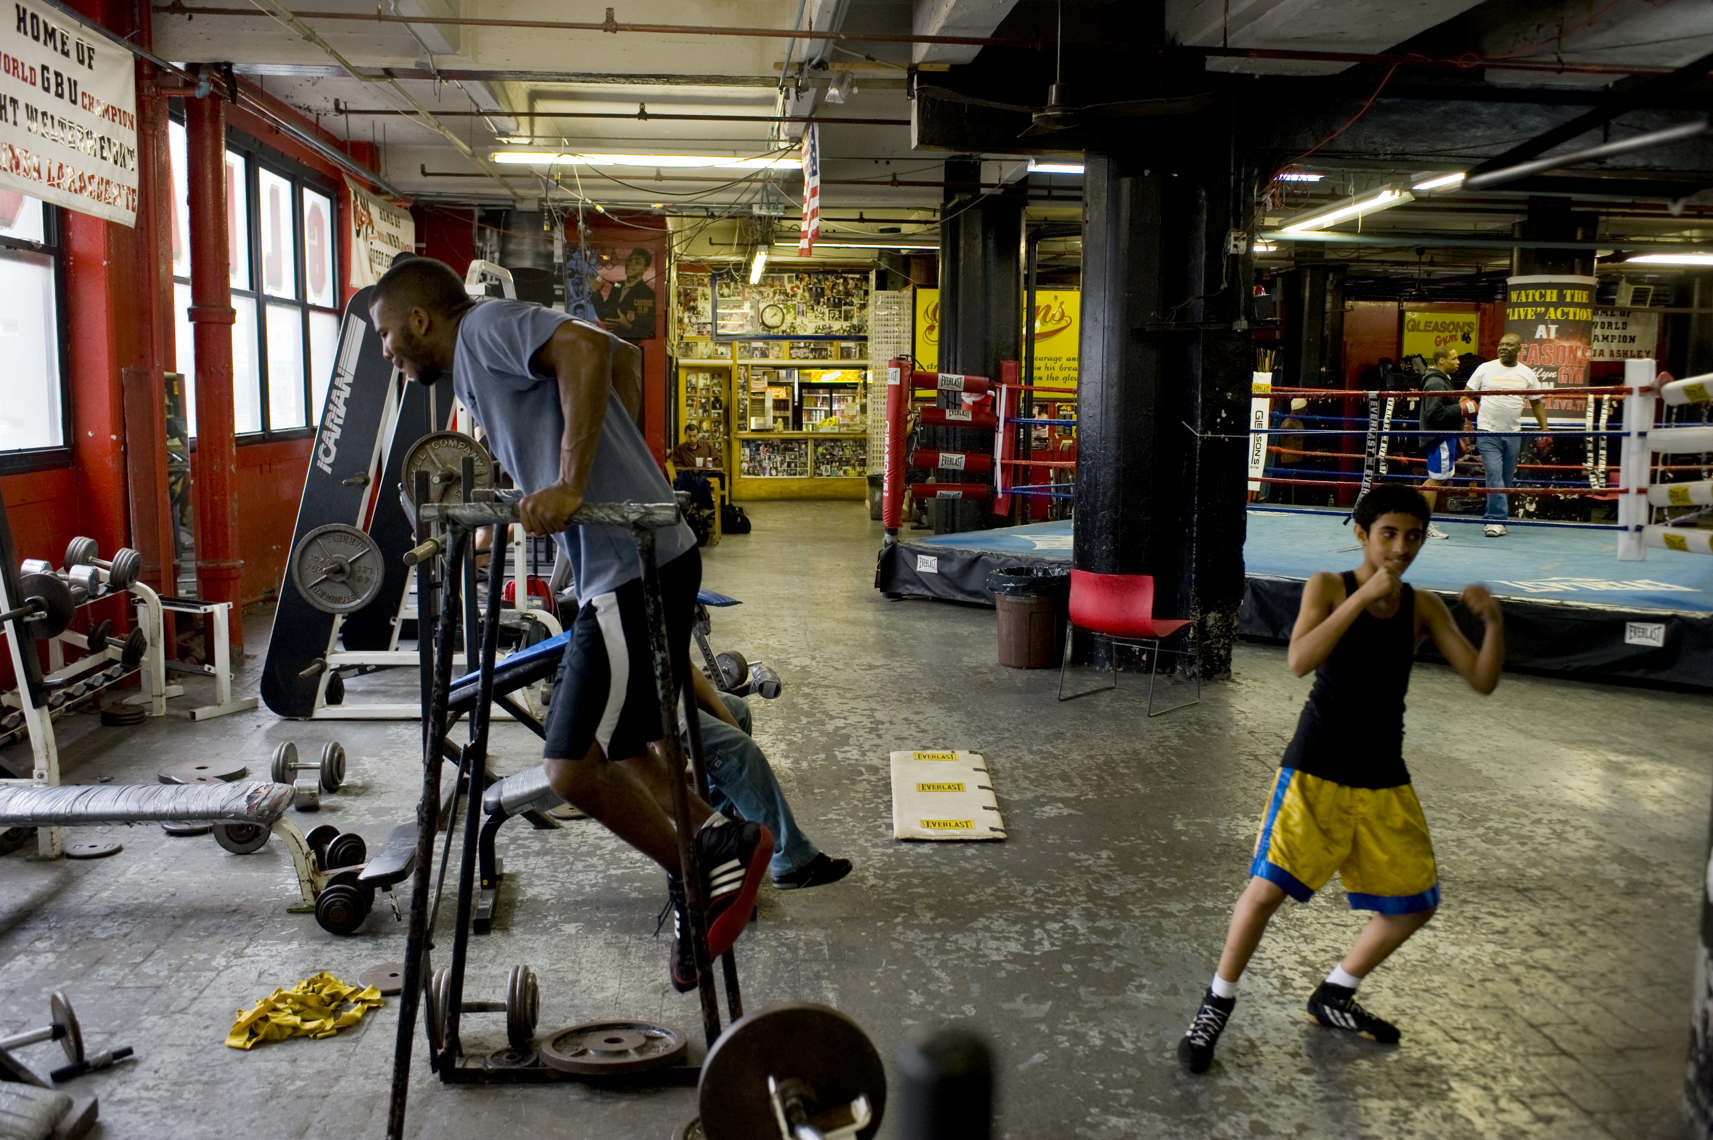 Gleasons Gym Brooklyn 34